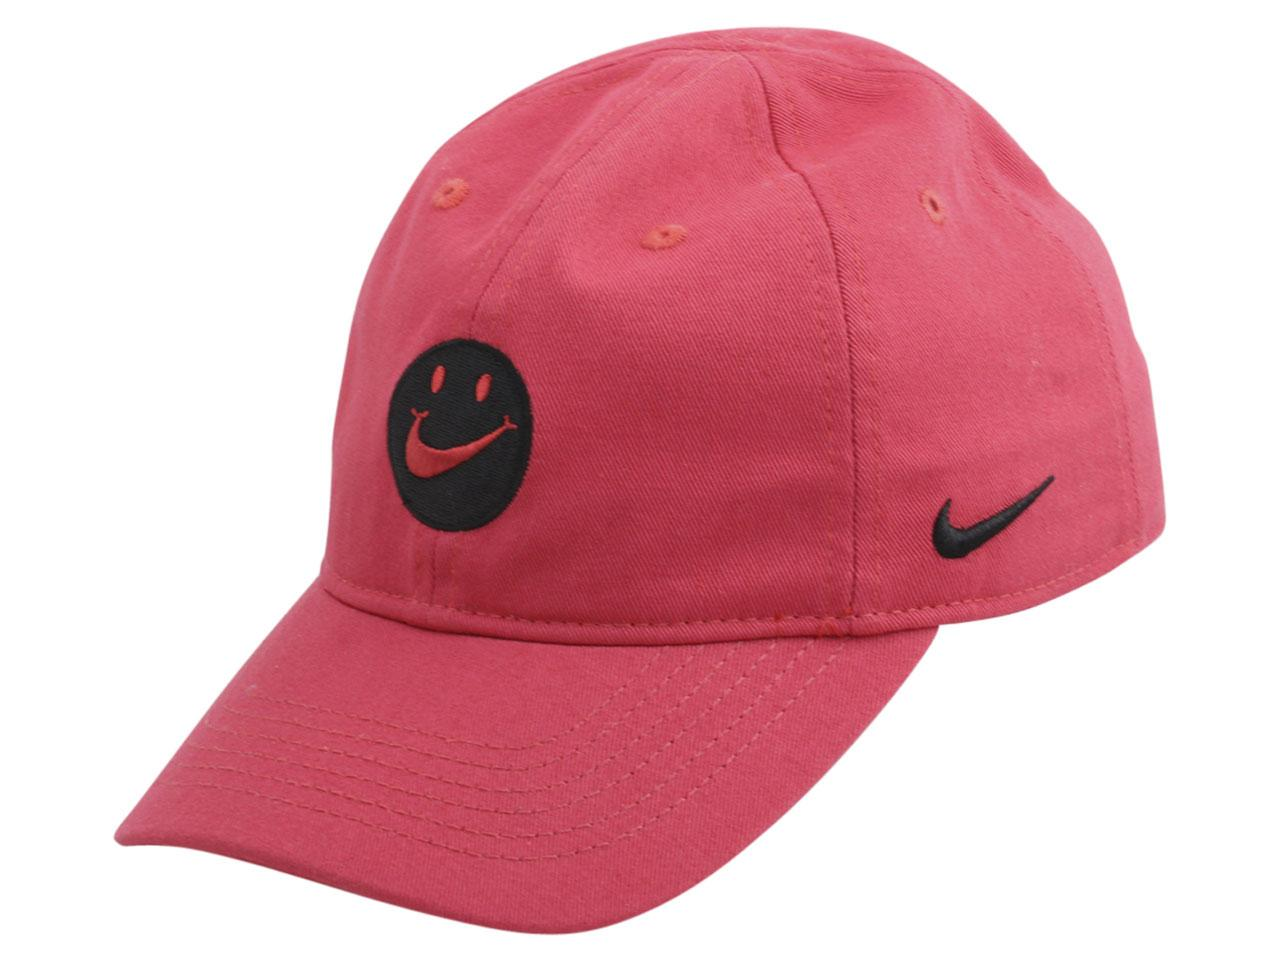 Nike Little Kid's Swoosh Patch Strapback Cotton Baseball Cap Hat